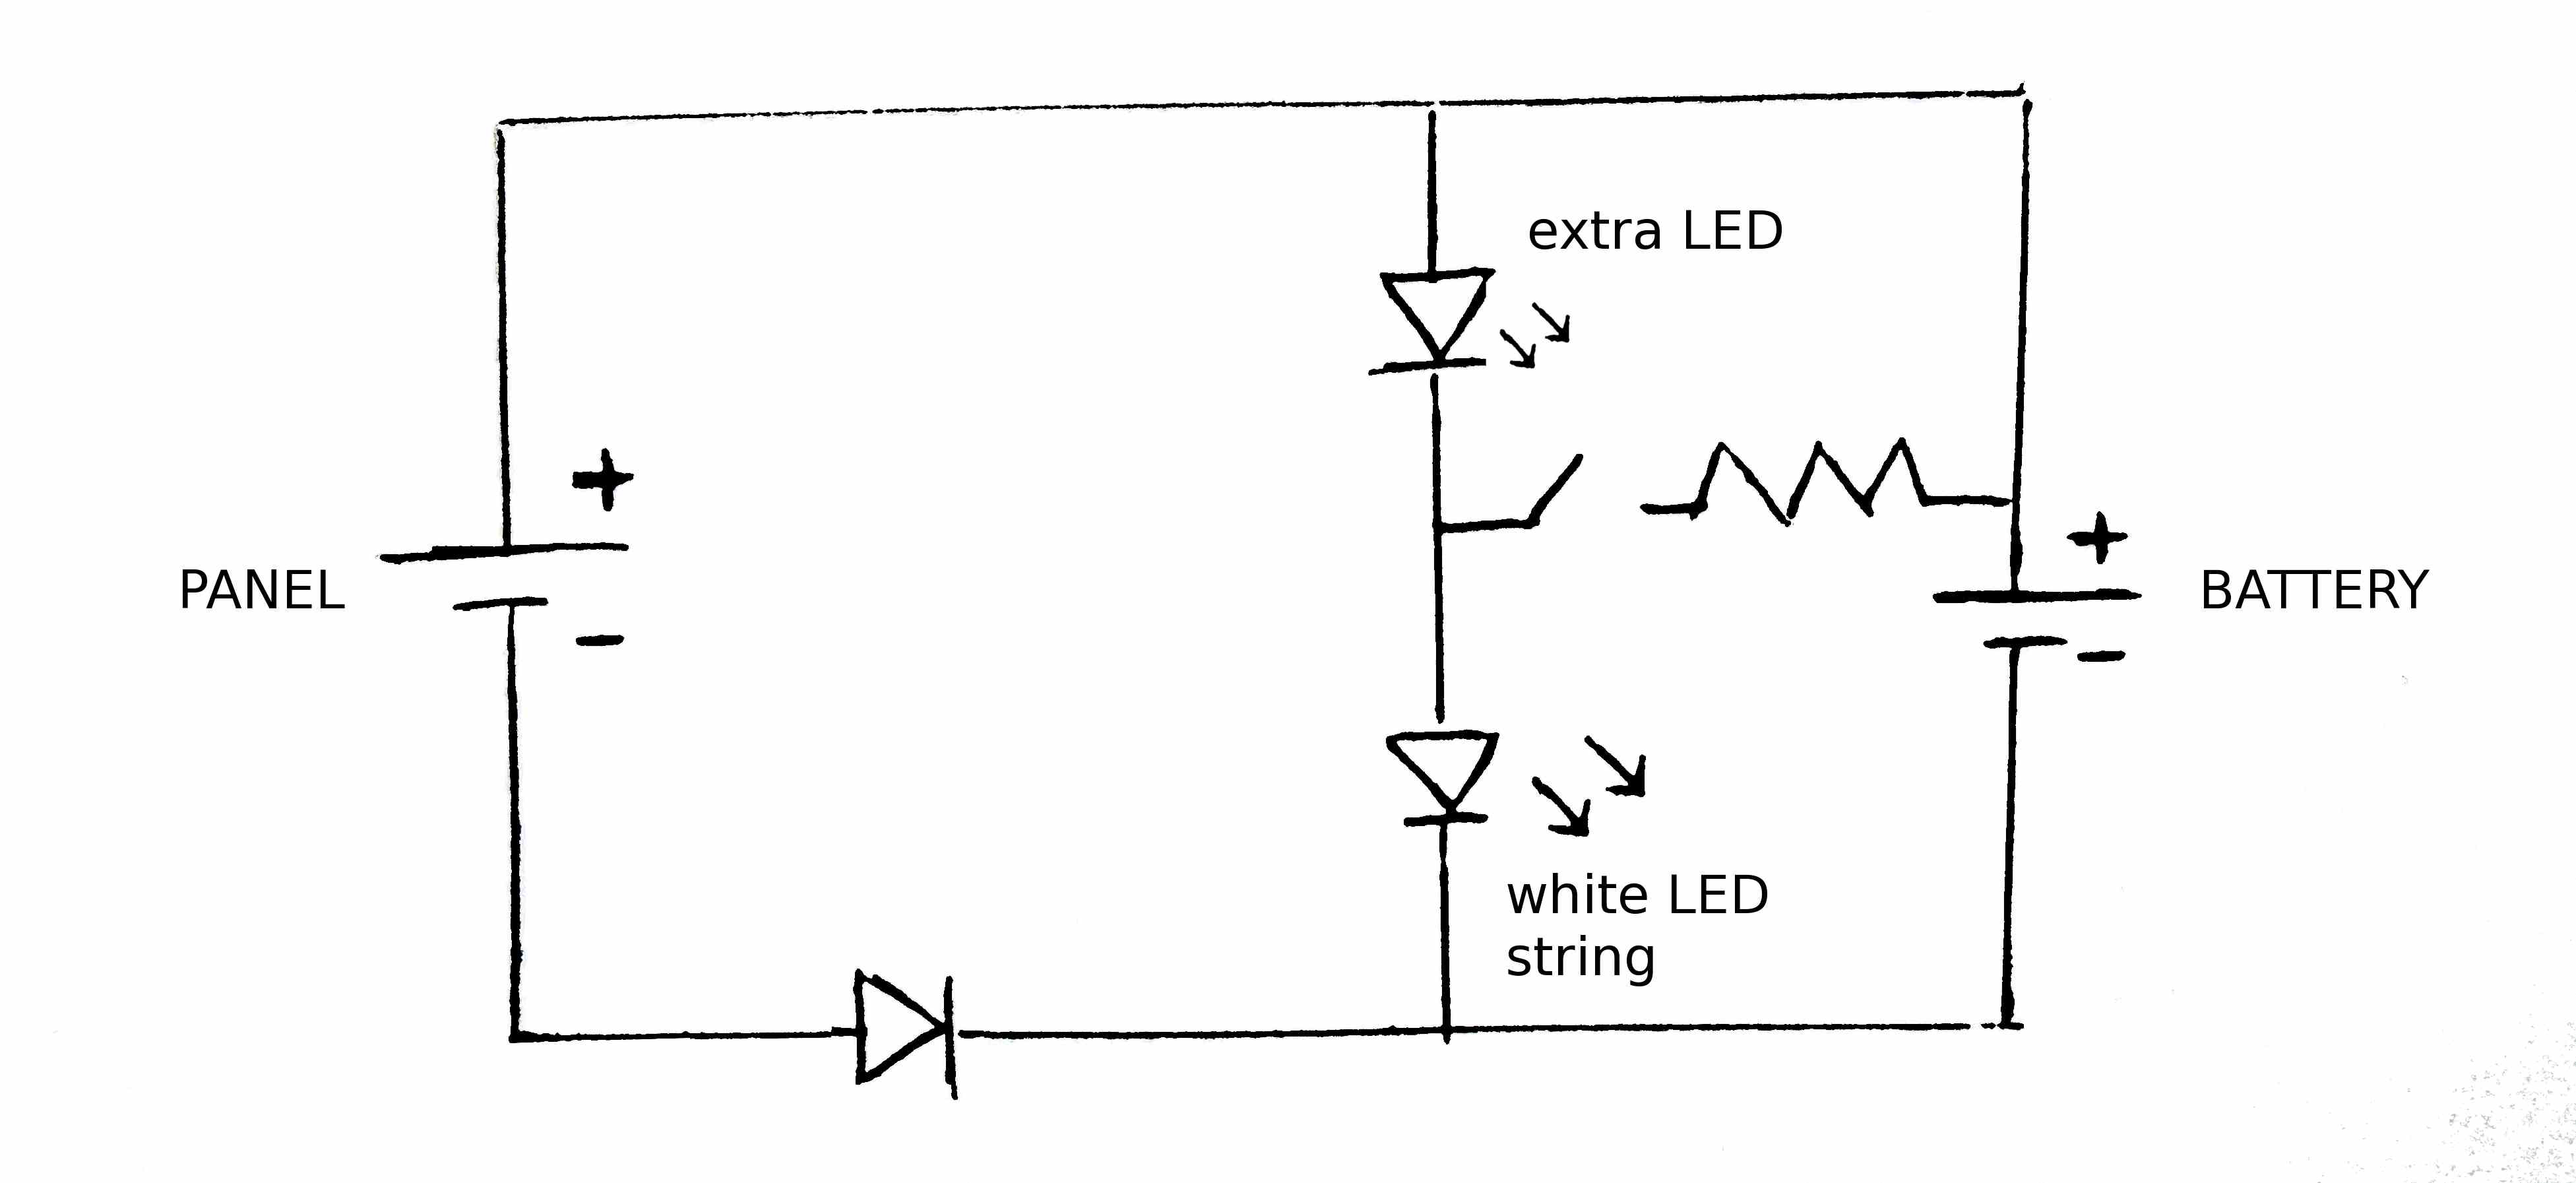 led light circuit diagram for dummies swimming pool sand filter simple free engine image